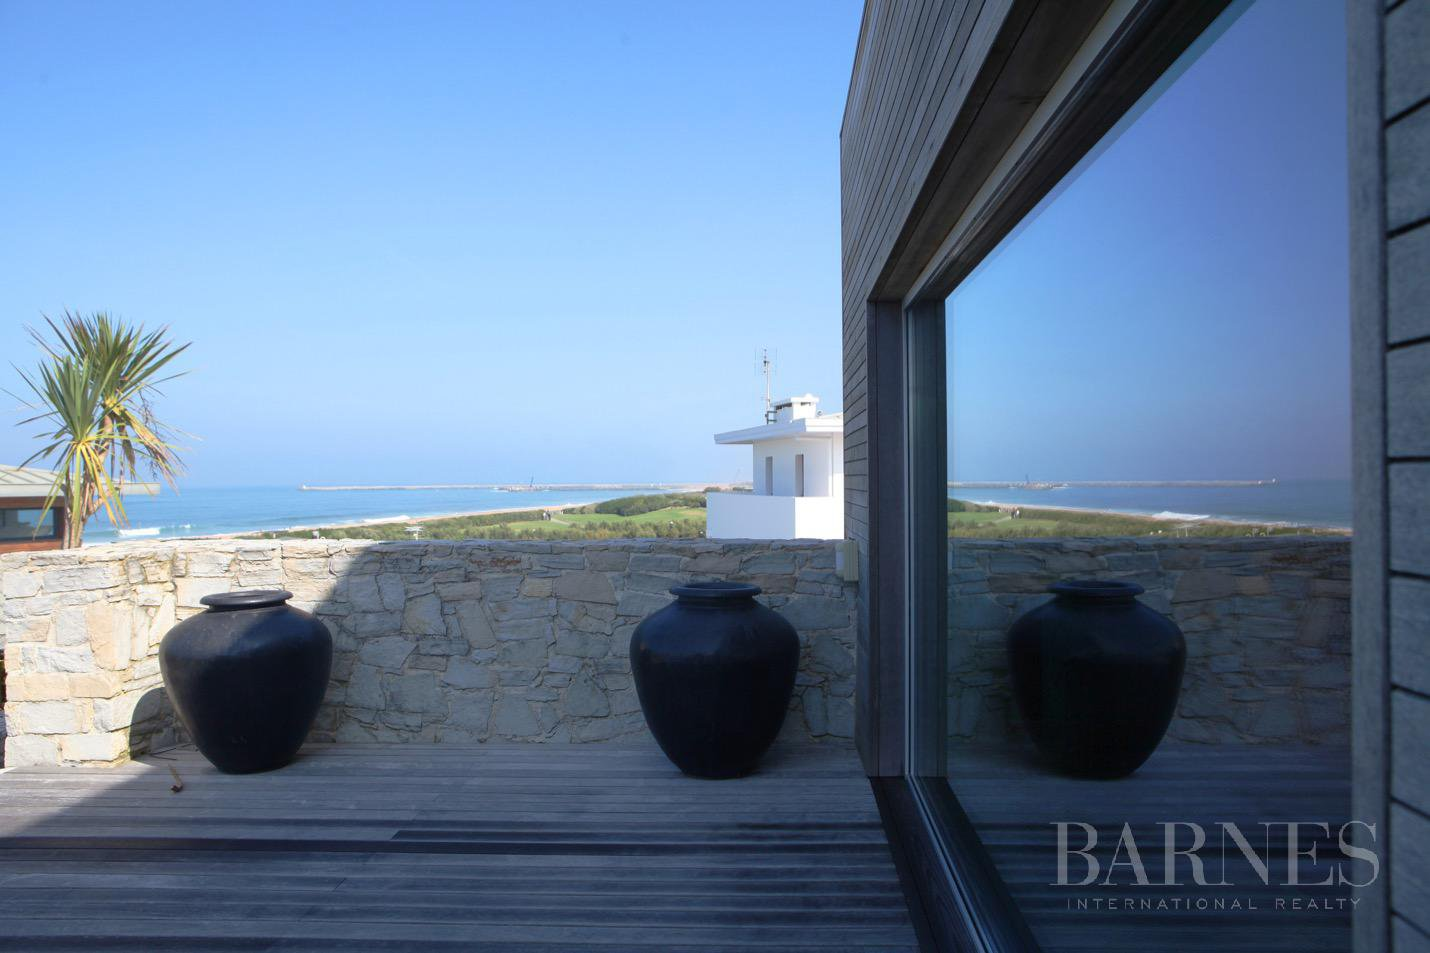 Exceptional contemporary house overlooking the sea, direct access to the beach, swimming-pool terrace sea view, hammam, 5 minutes from Biarritz, Anglet beach by walk, for rent picture 15